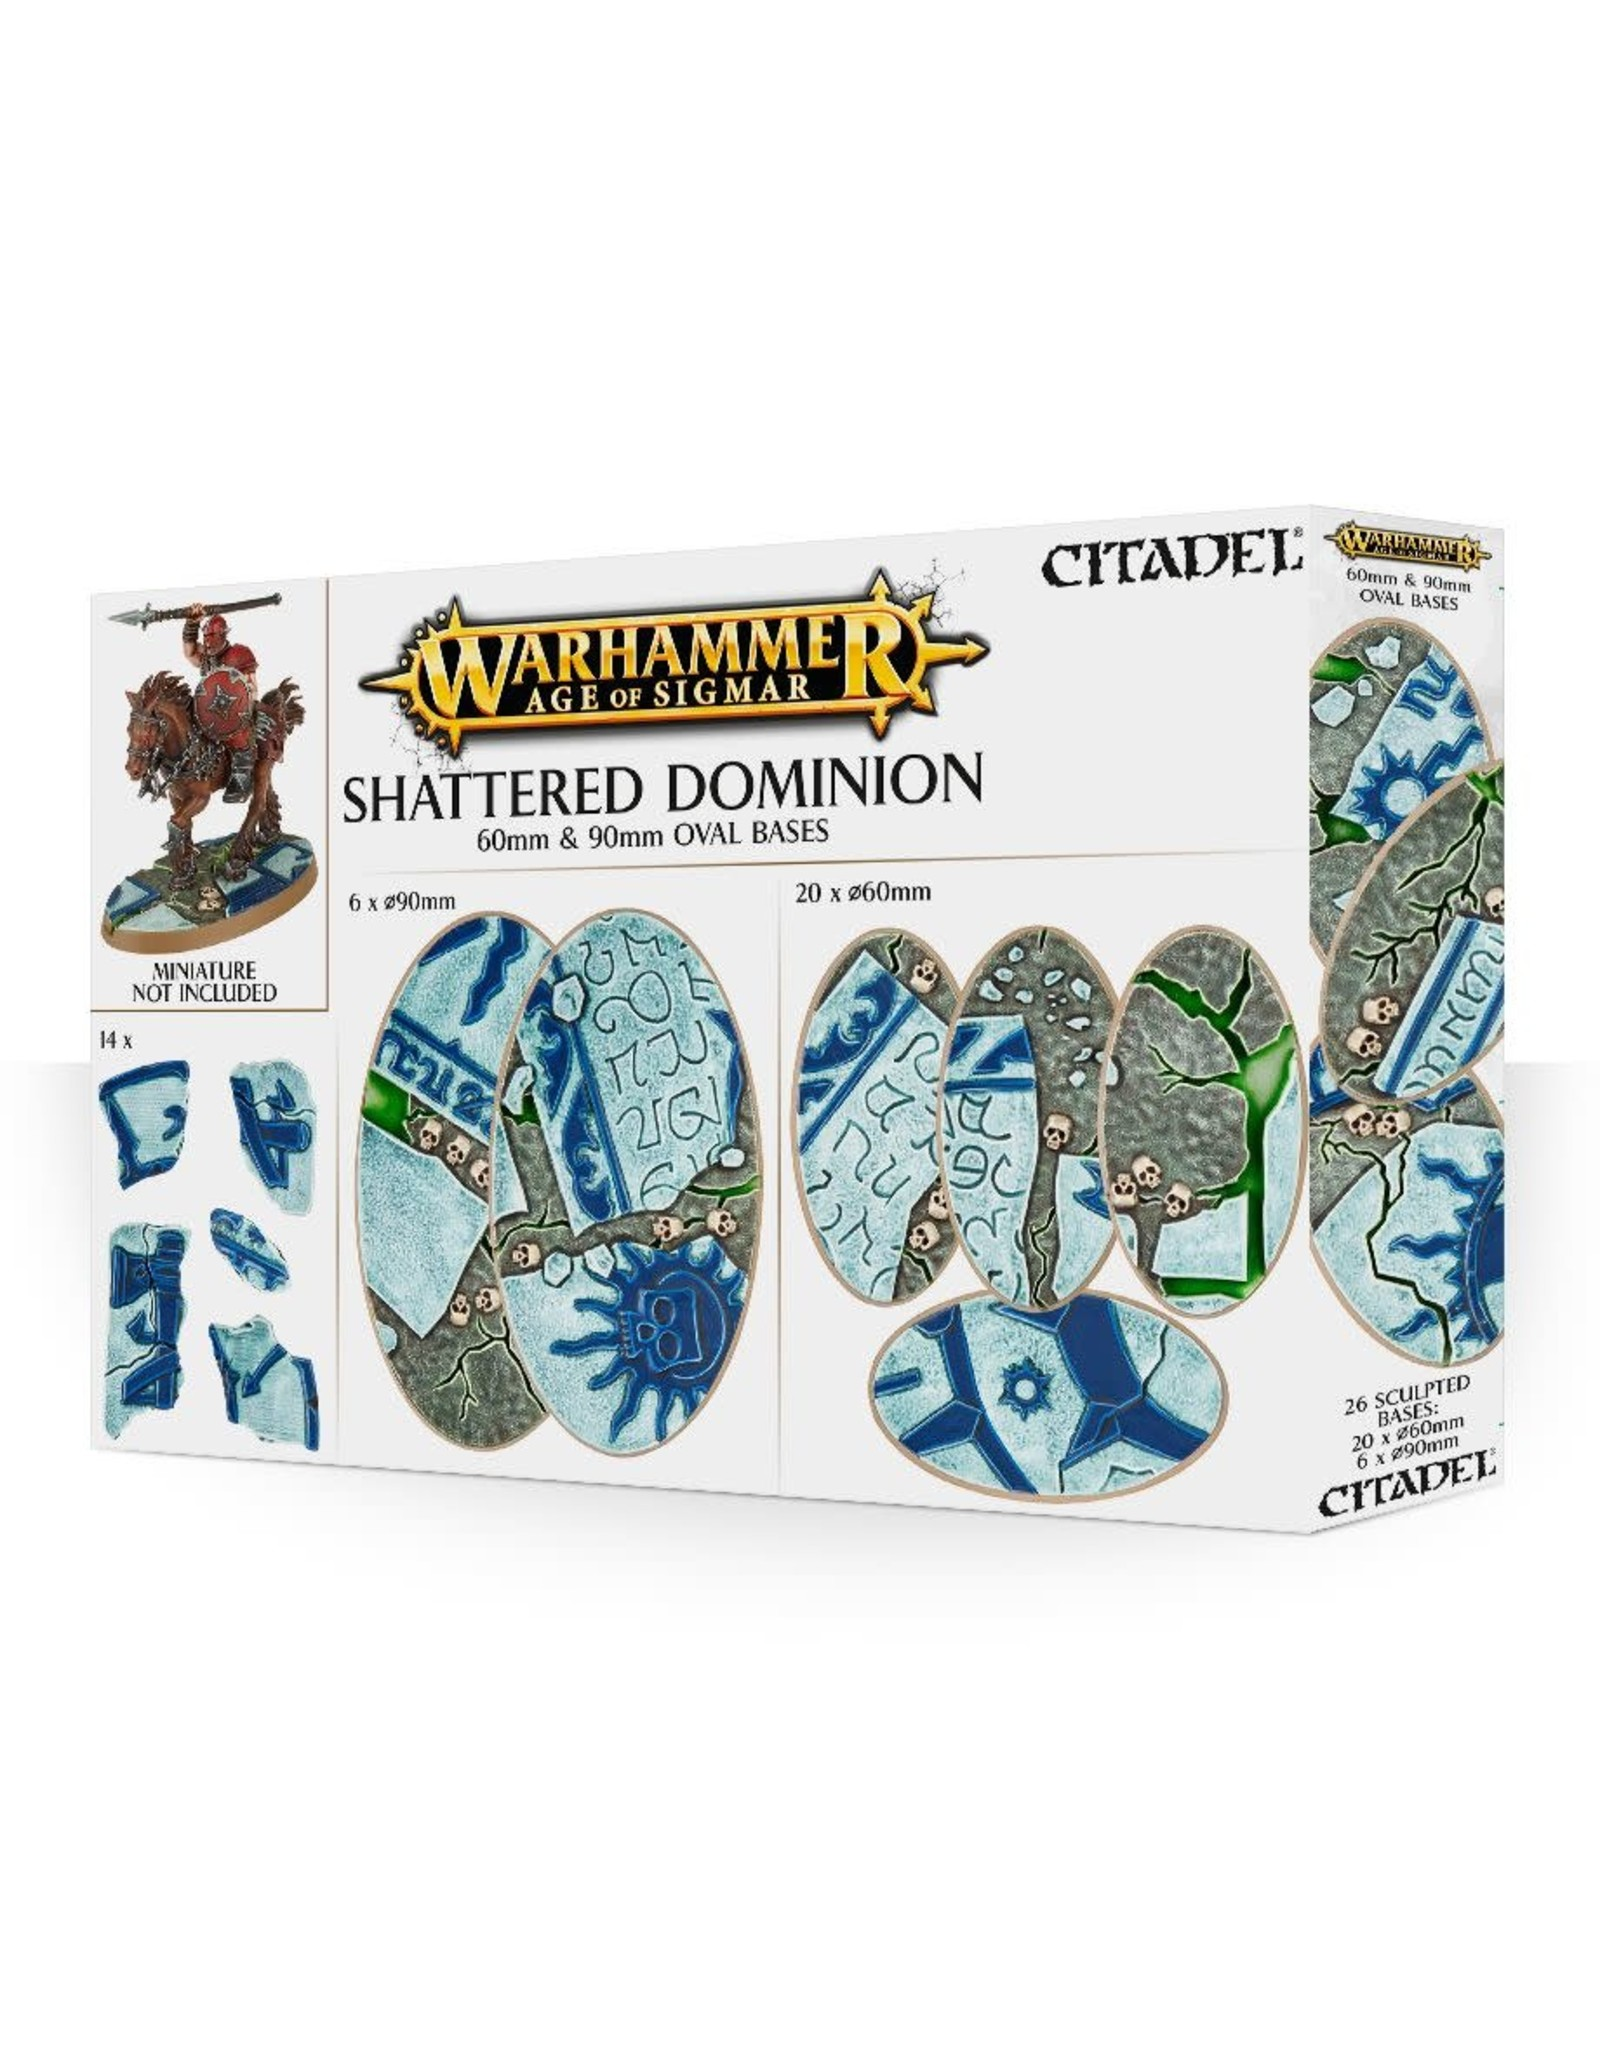 Citadel AOS: SHATTERED DOMINION: 60 & 90MM OVAL